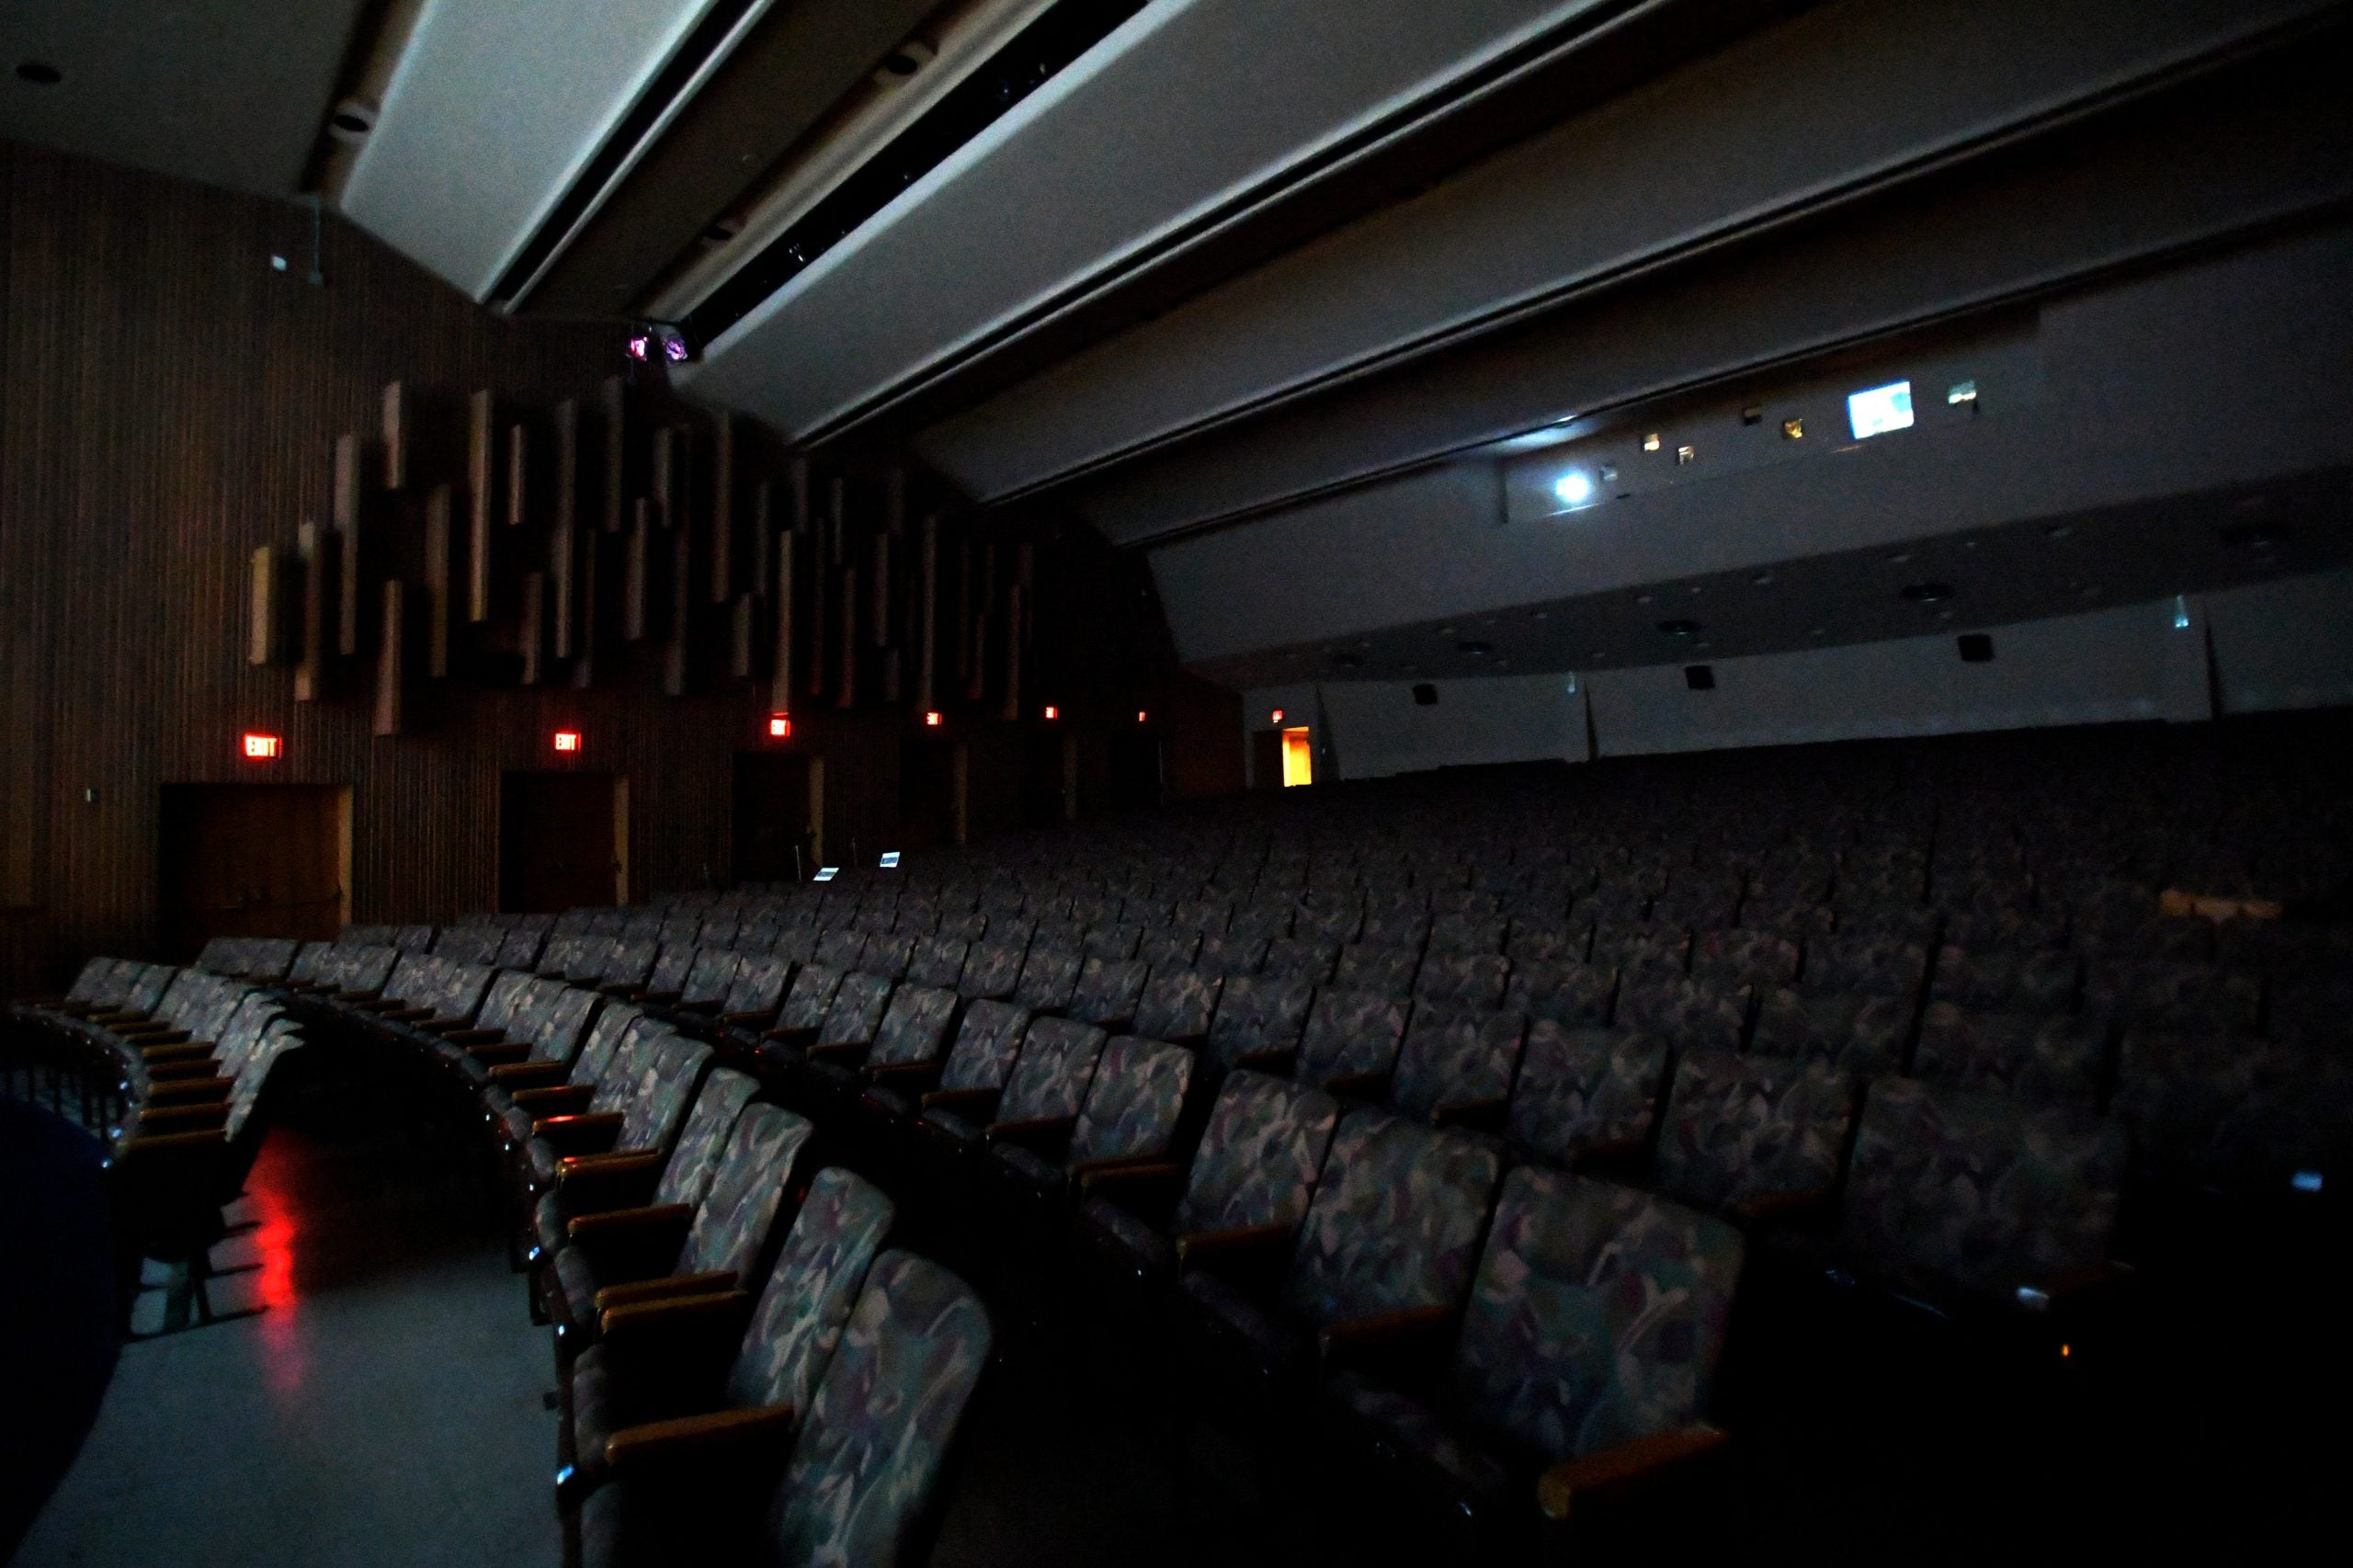 We all crave the little things we could do before lockdown – and I desperately miss the cinema